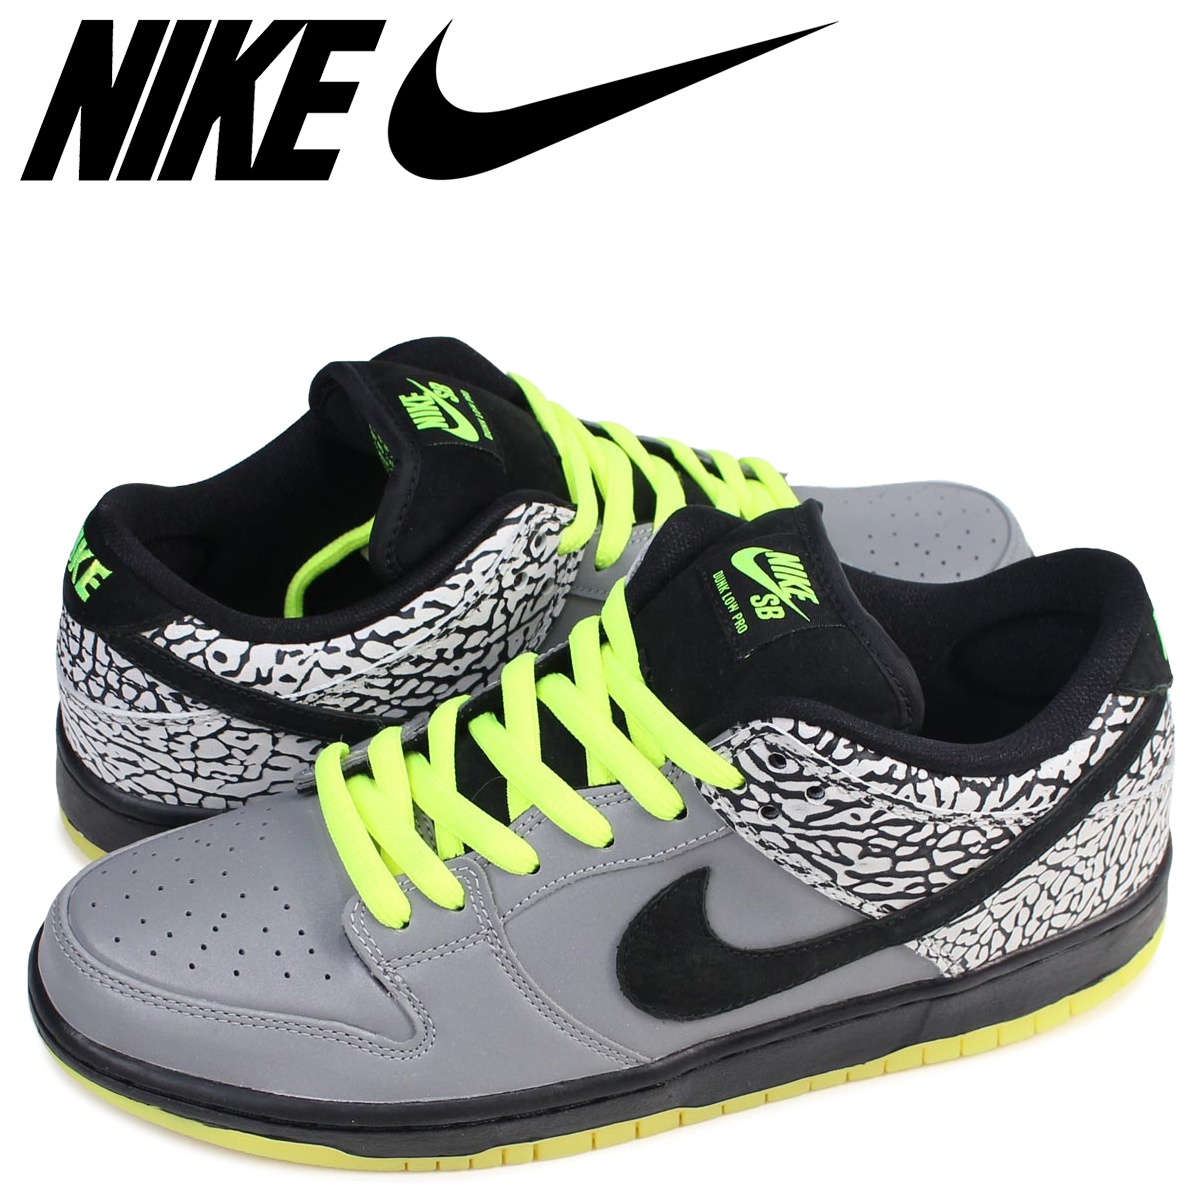 3d116c48a97 NIKE Nike SB dunk low sneakers DUNK LOW PREMIUM DJ CLARK KENT 504,750-017  men's shoes gray